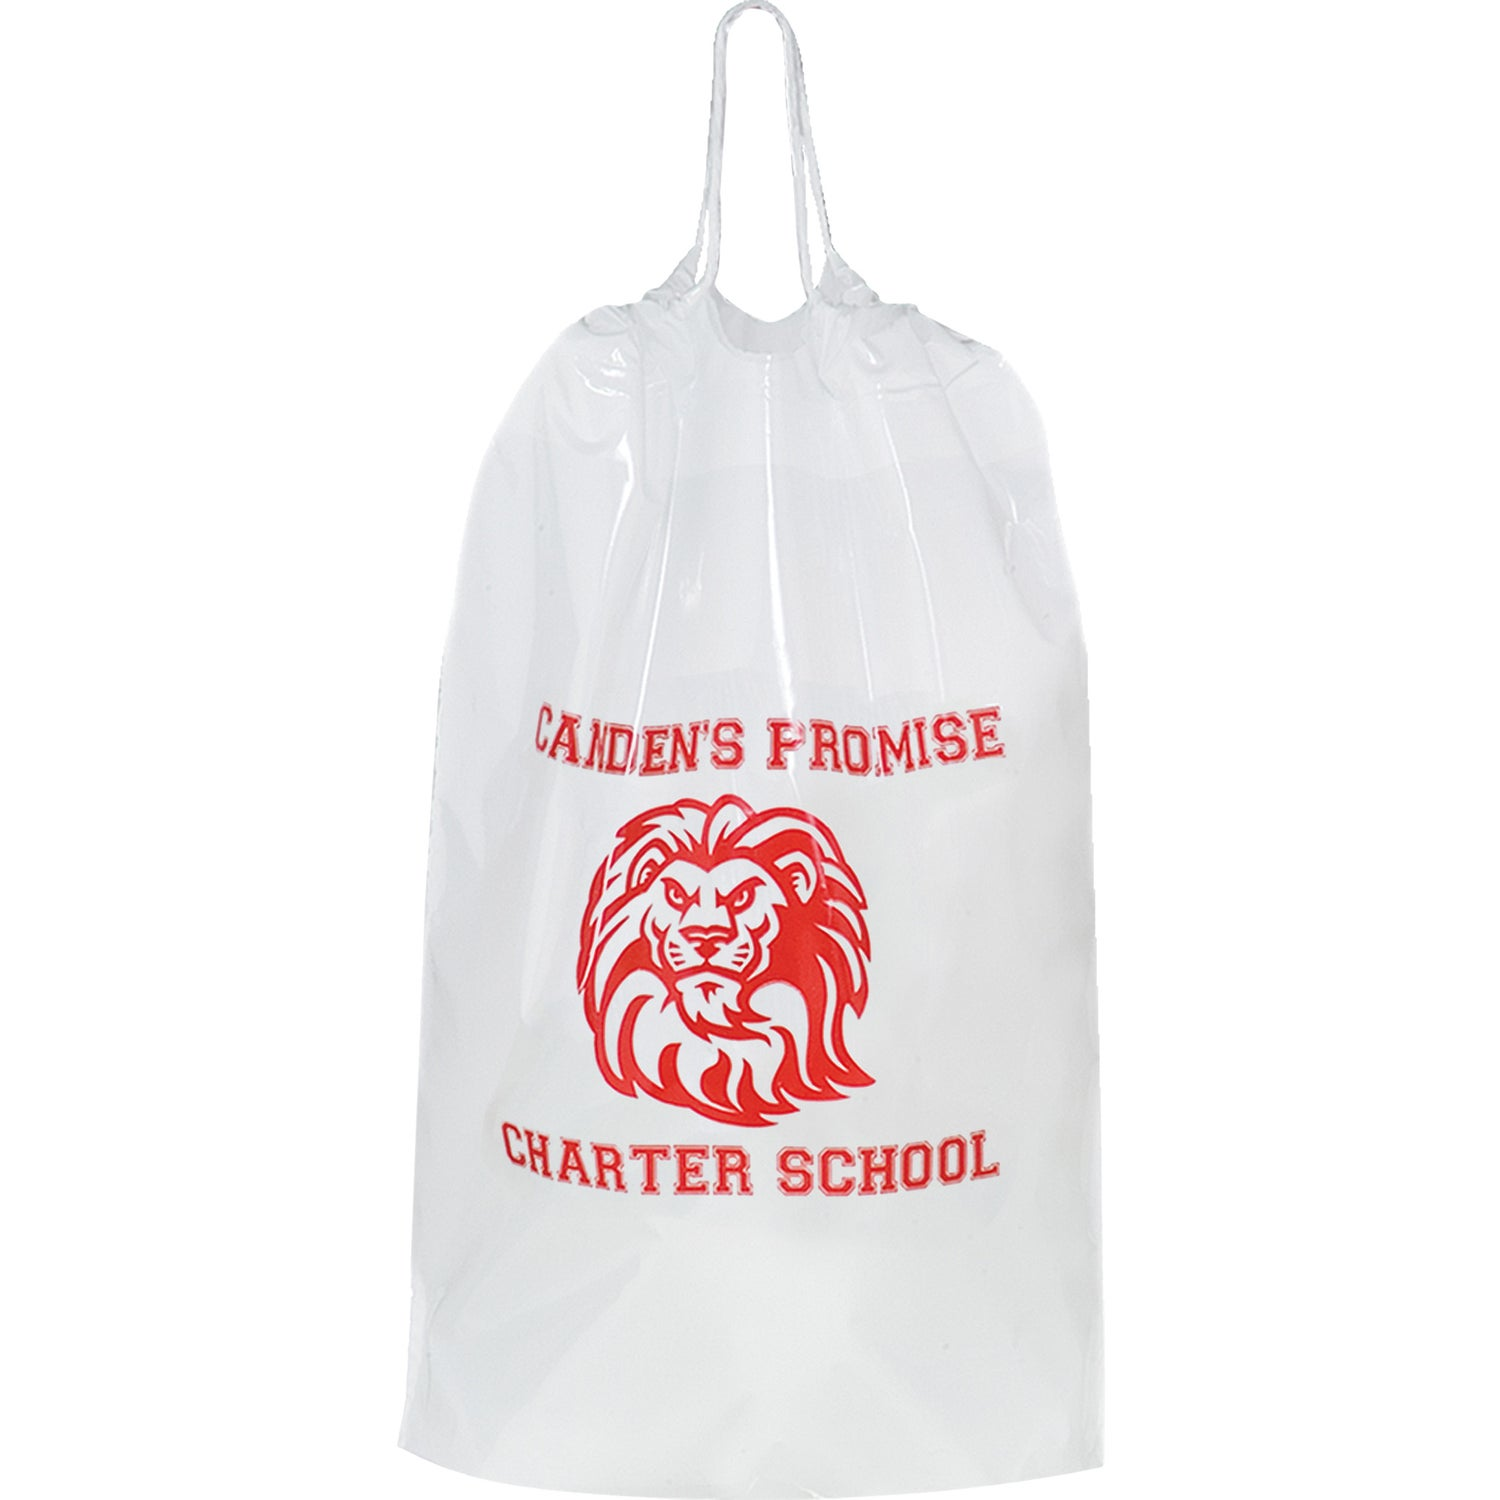 Cotton Cord Drawstring Bag